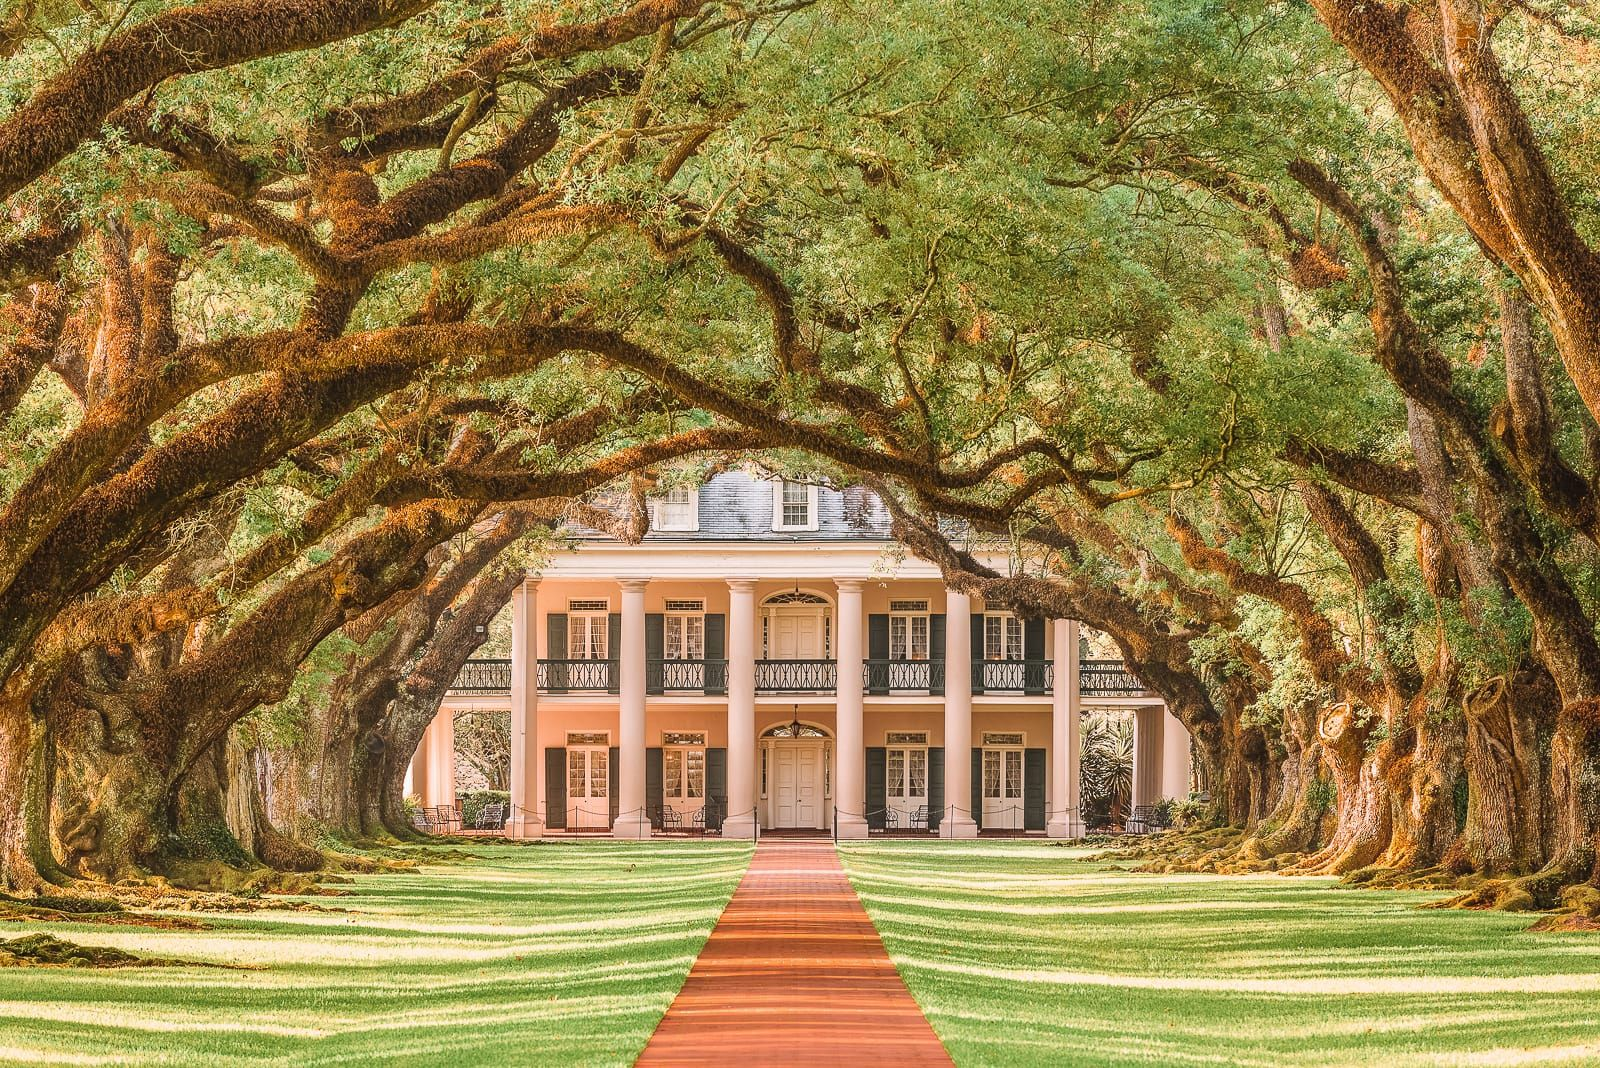 21 Fun Cities In The US You Have To Visit Plantation